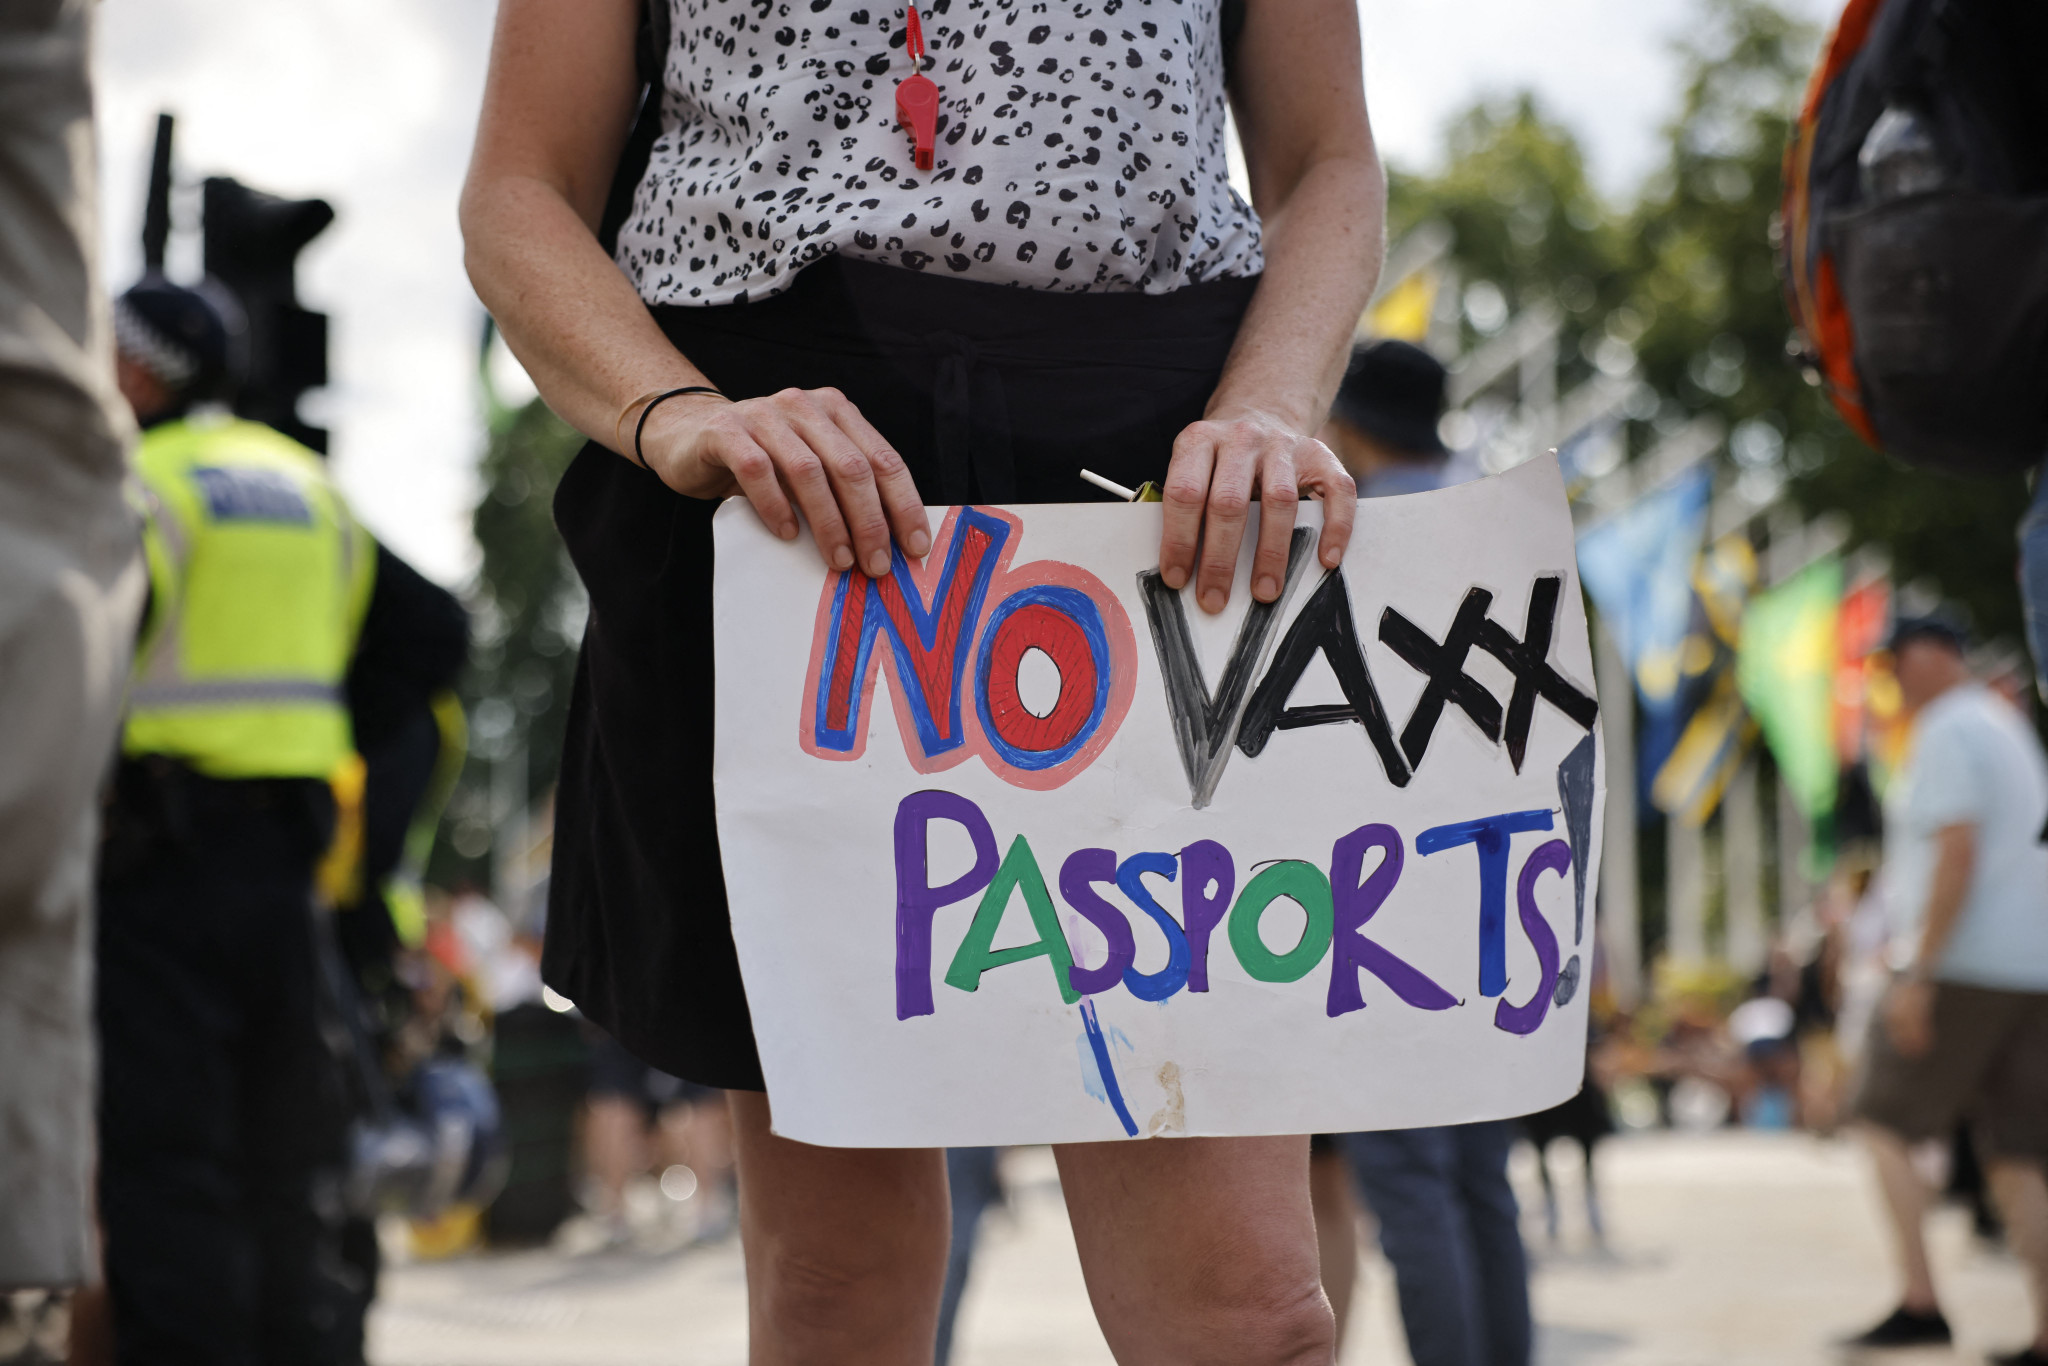 Vaccine passports have divided opinions around the world ©Getty Images